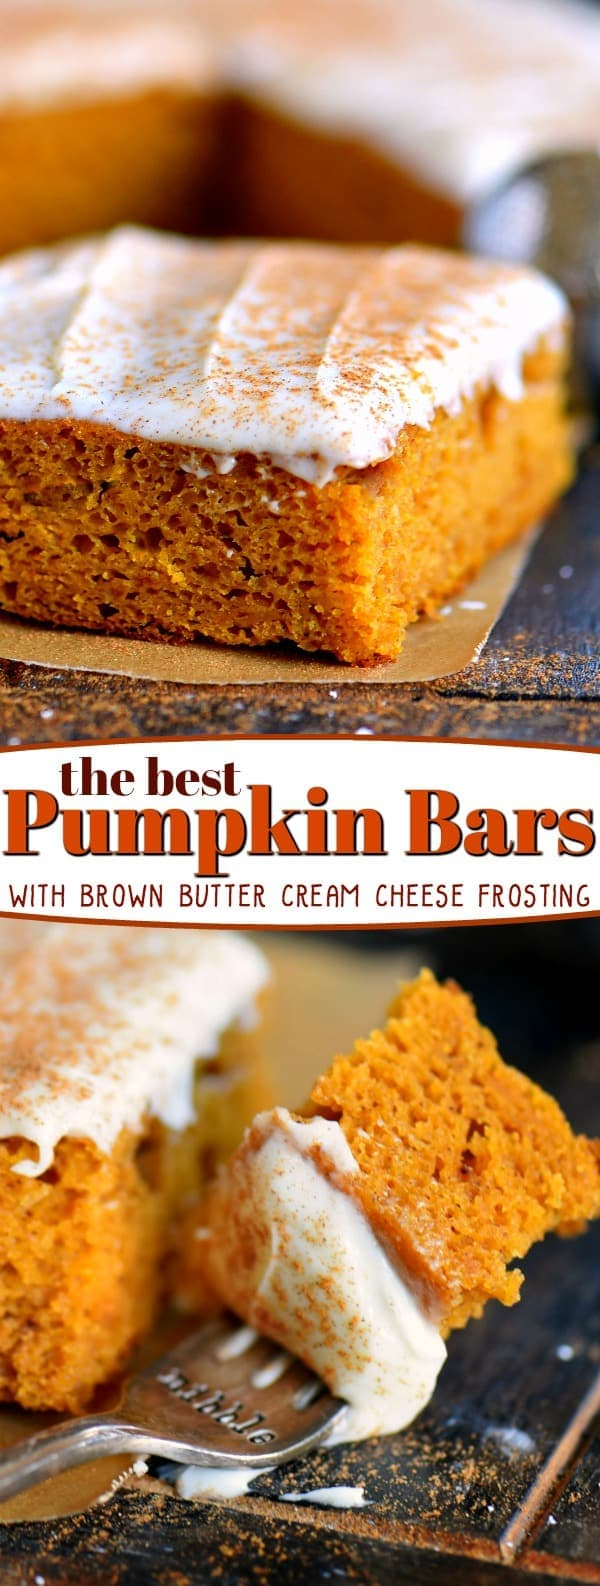 best-pumpkin-bars-recipe-collage